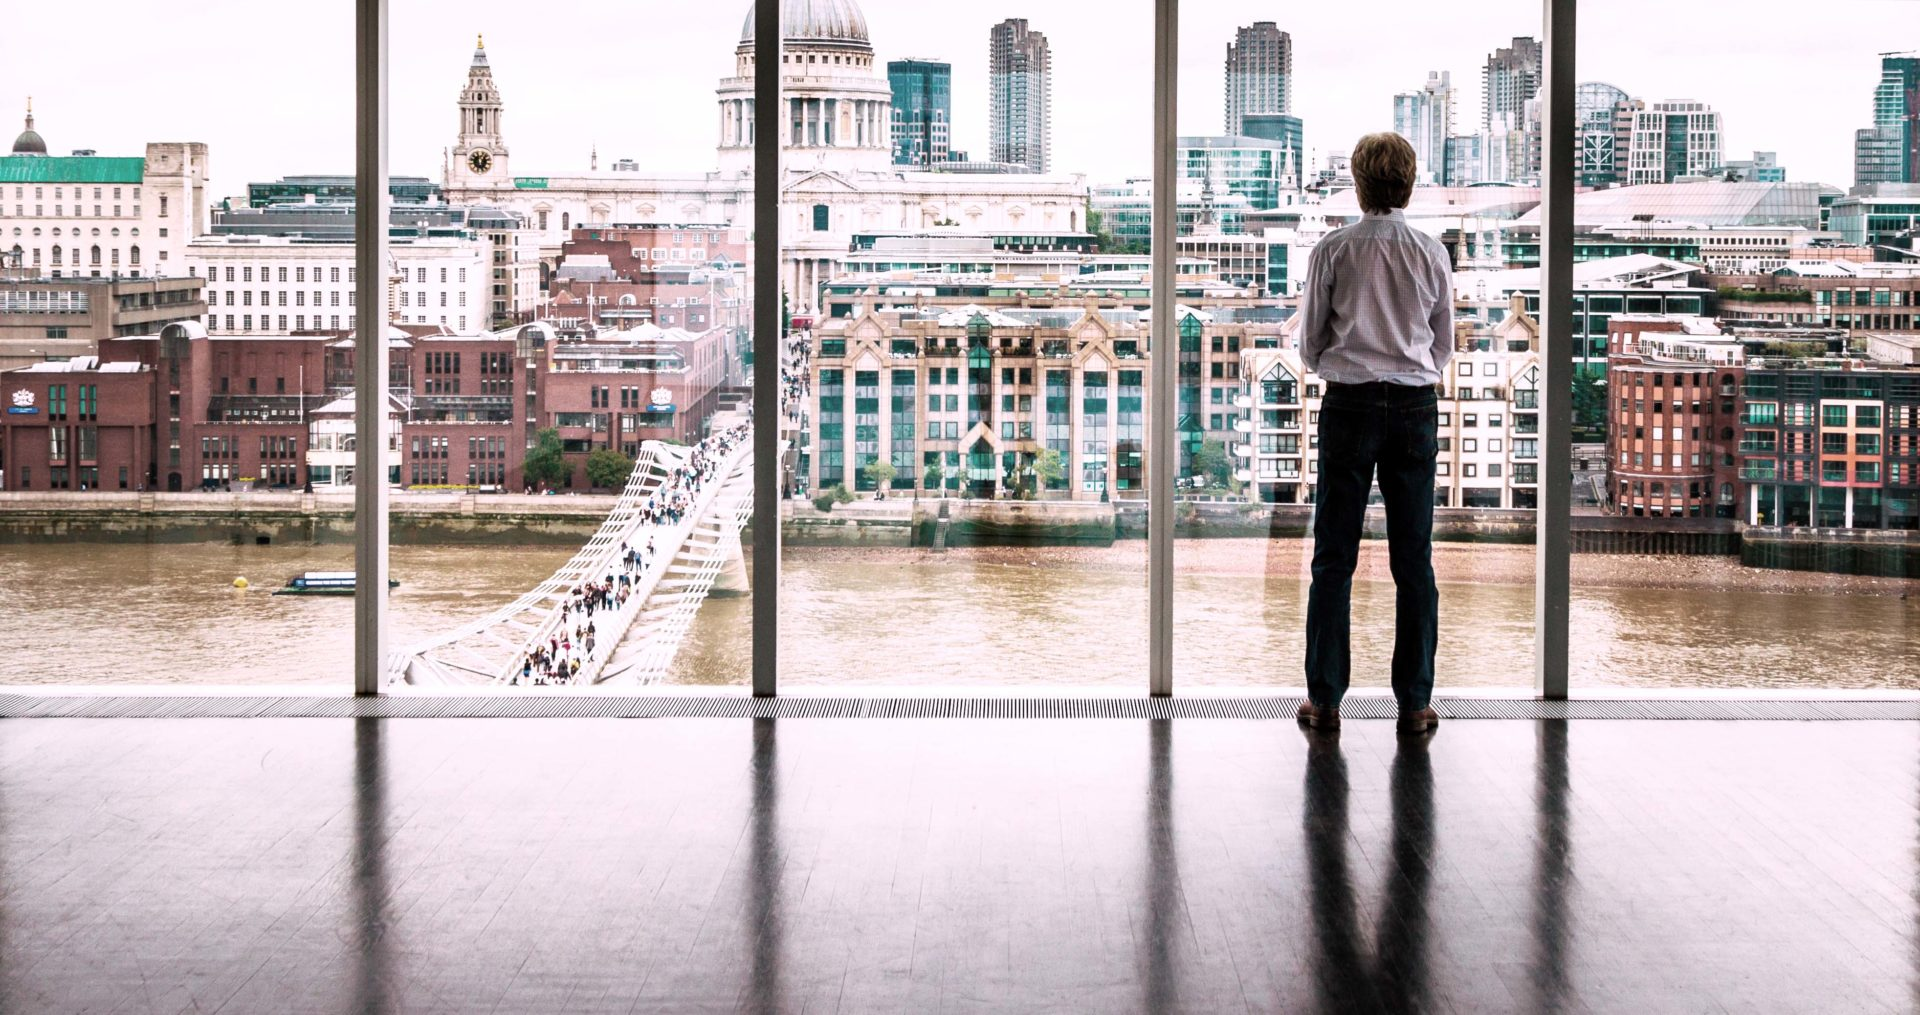 Rear view image of a businessman looking out at the modern London skyline from high up in his office building. He is looking across the river Thames, across the Millennium Bridge to St Paul's cathedral and the high rise skyscrapers of the City of London. He has his hands folden in front of him. Horizontal colour image with copy space.